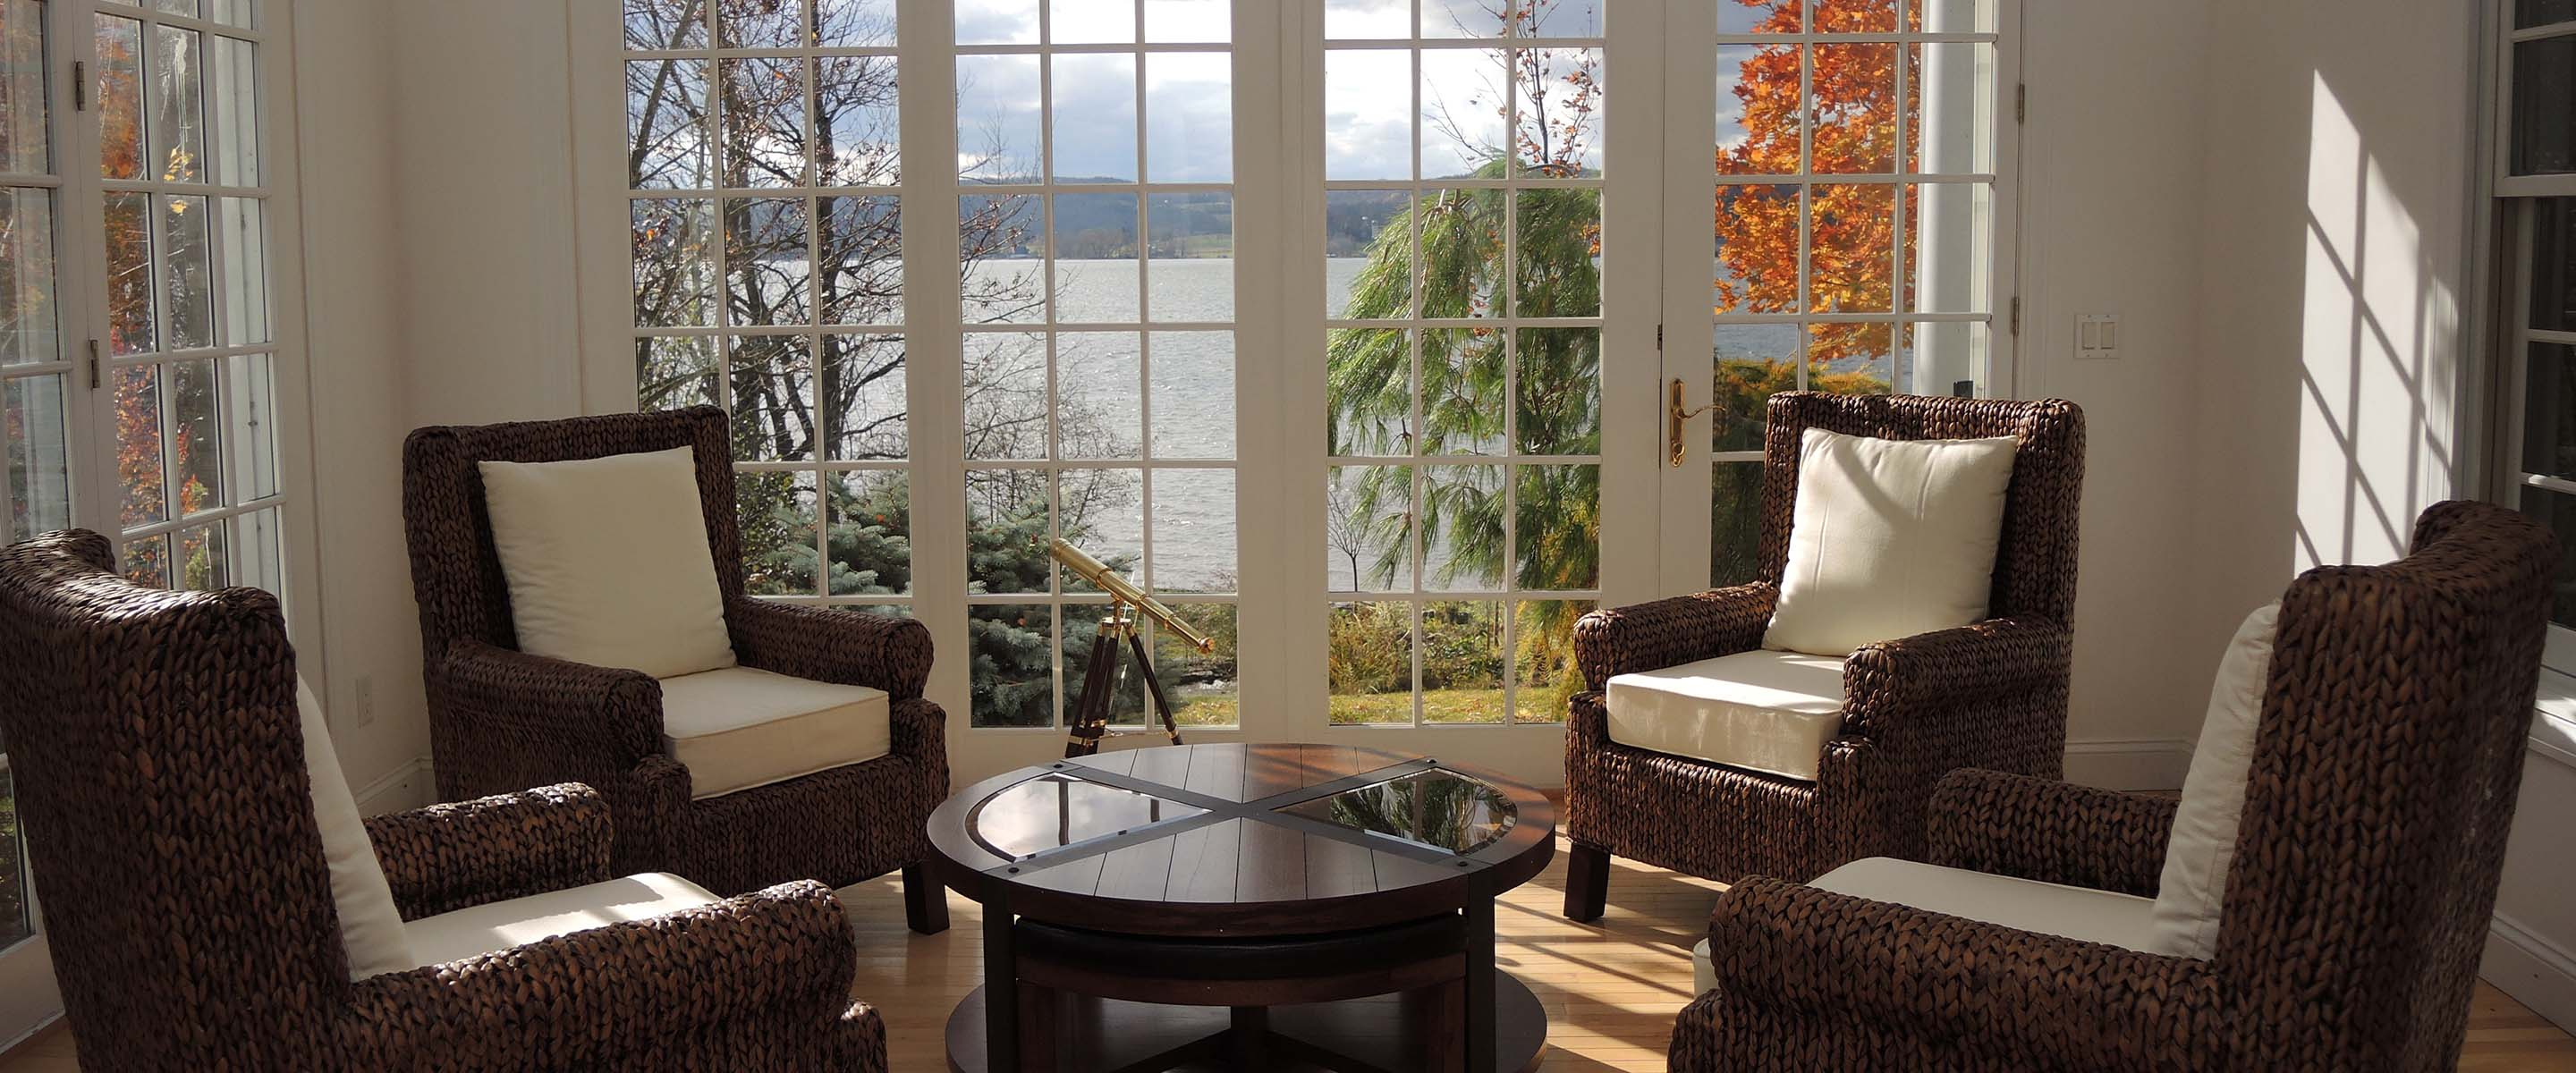 Cooperstown Stay, Inc